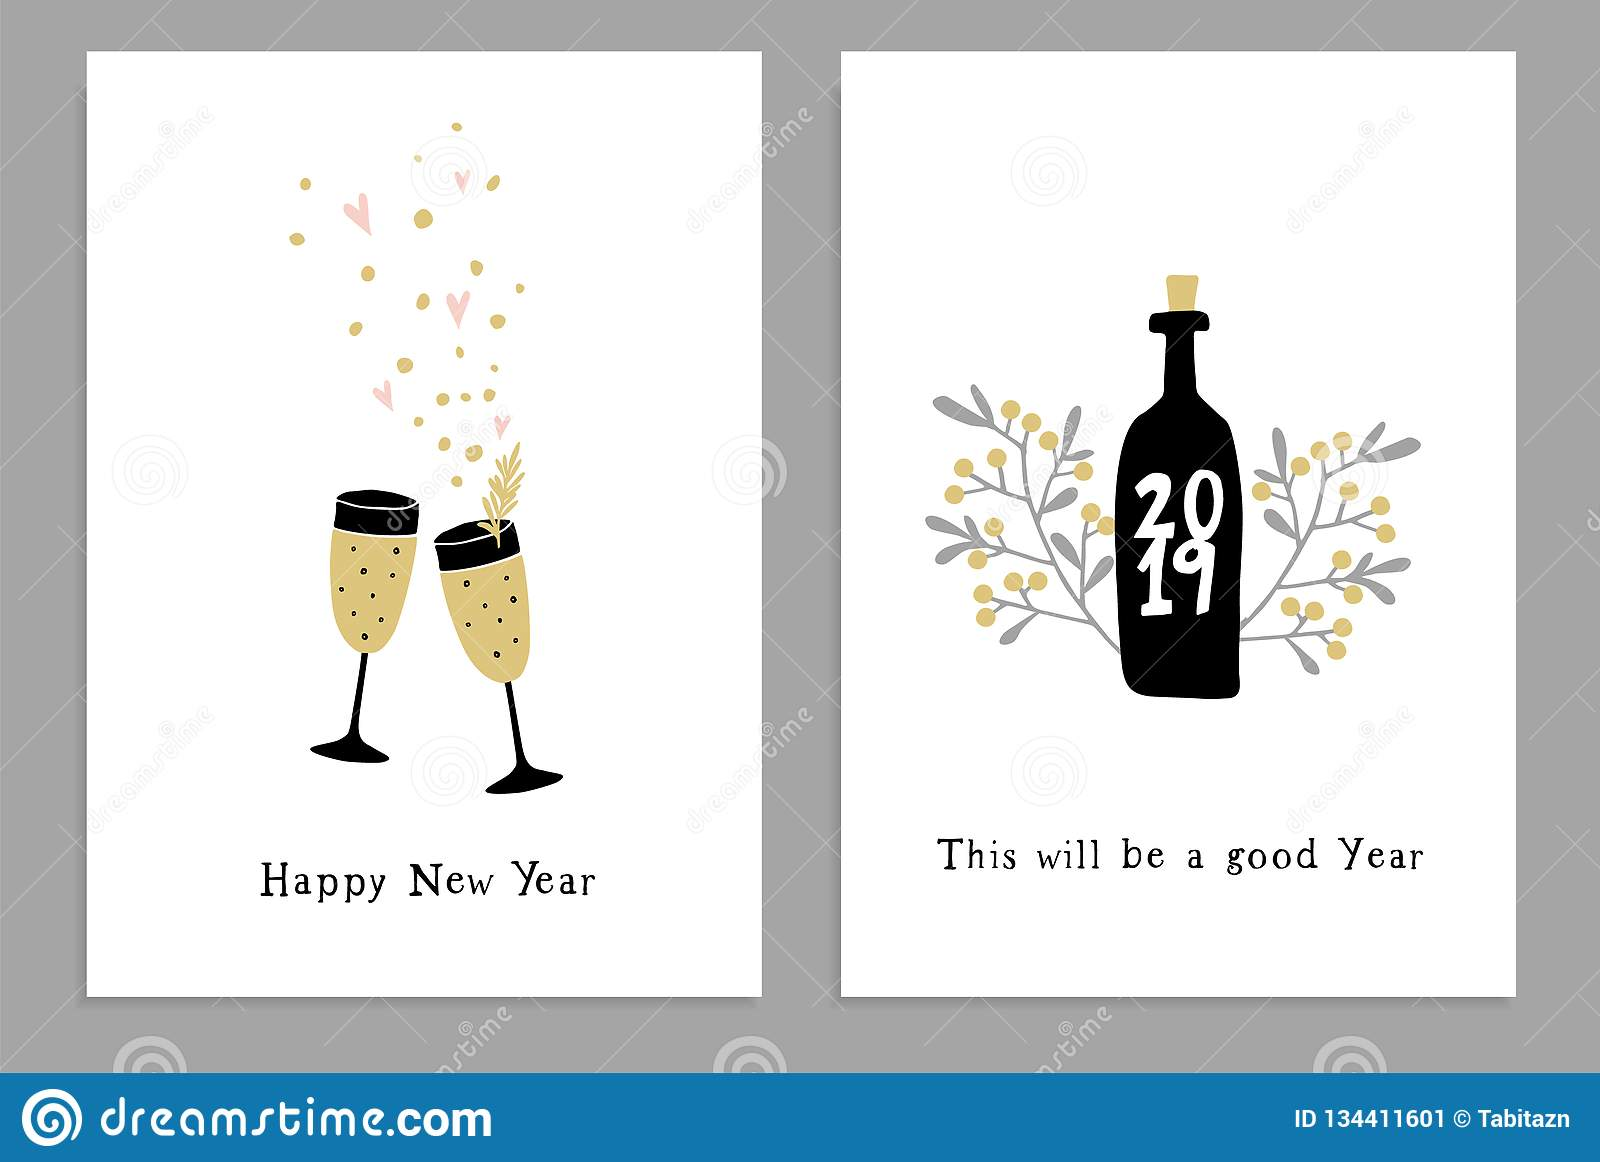 Set of Happy New Year greeting cards, party invitations with hand drawn wine glasses, bottle and confetti stars